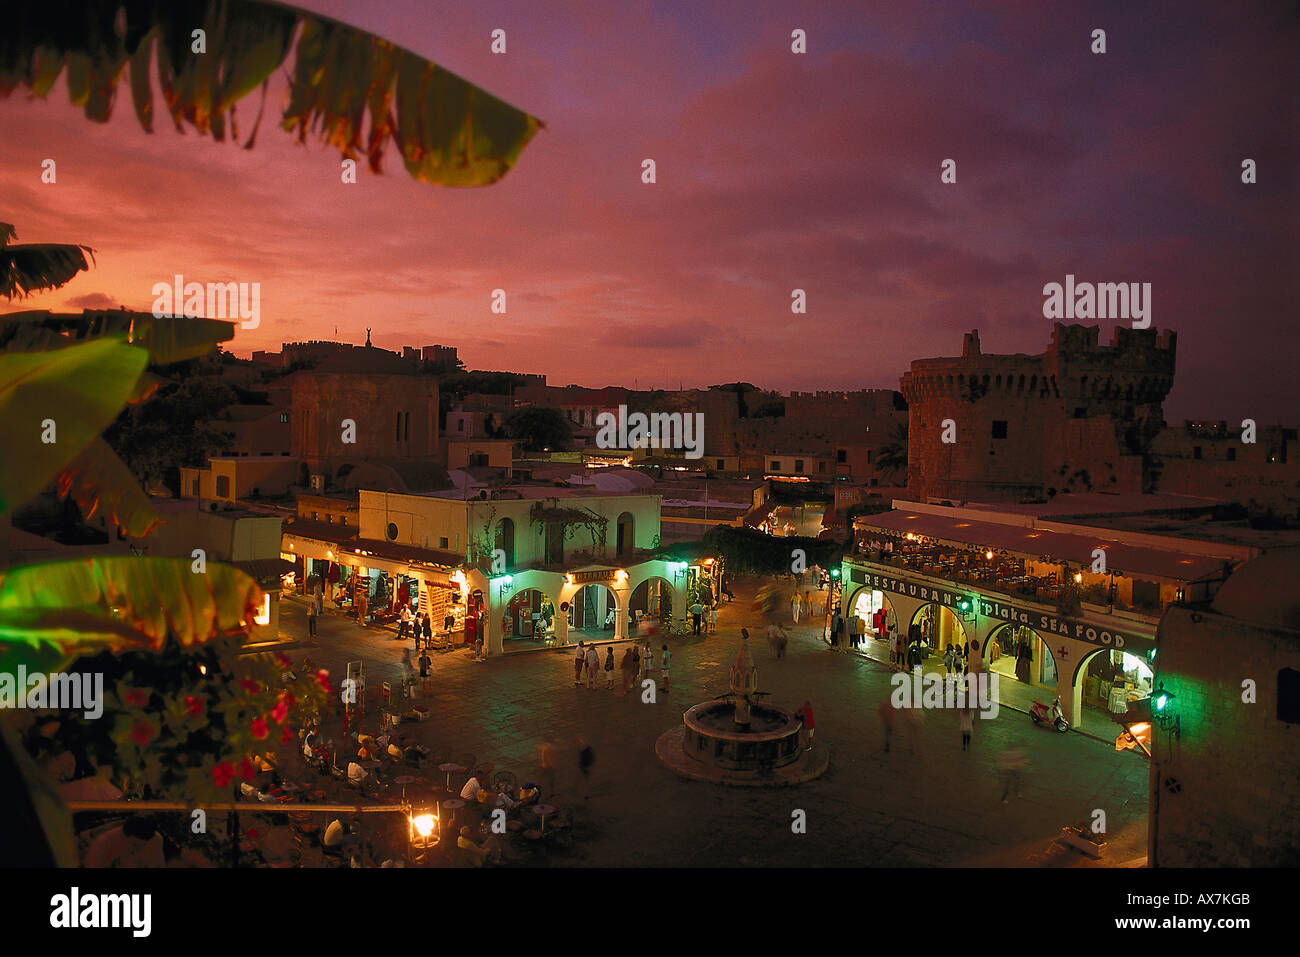 Hippokrates Square, Rhodos City, Greece - Stock Image